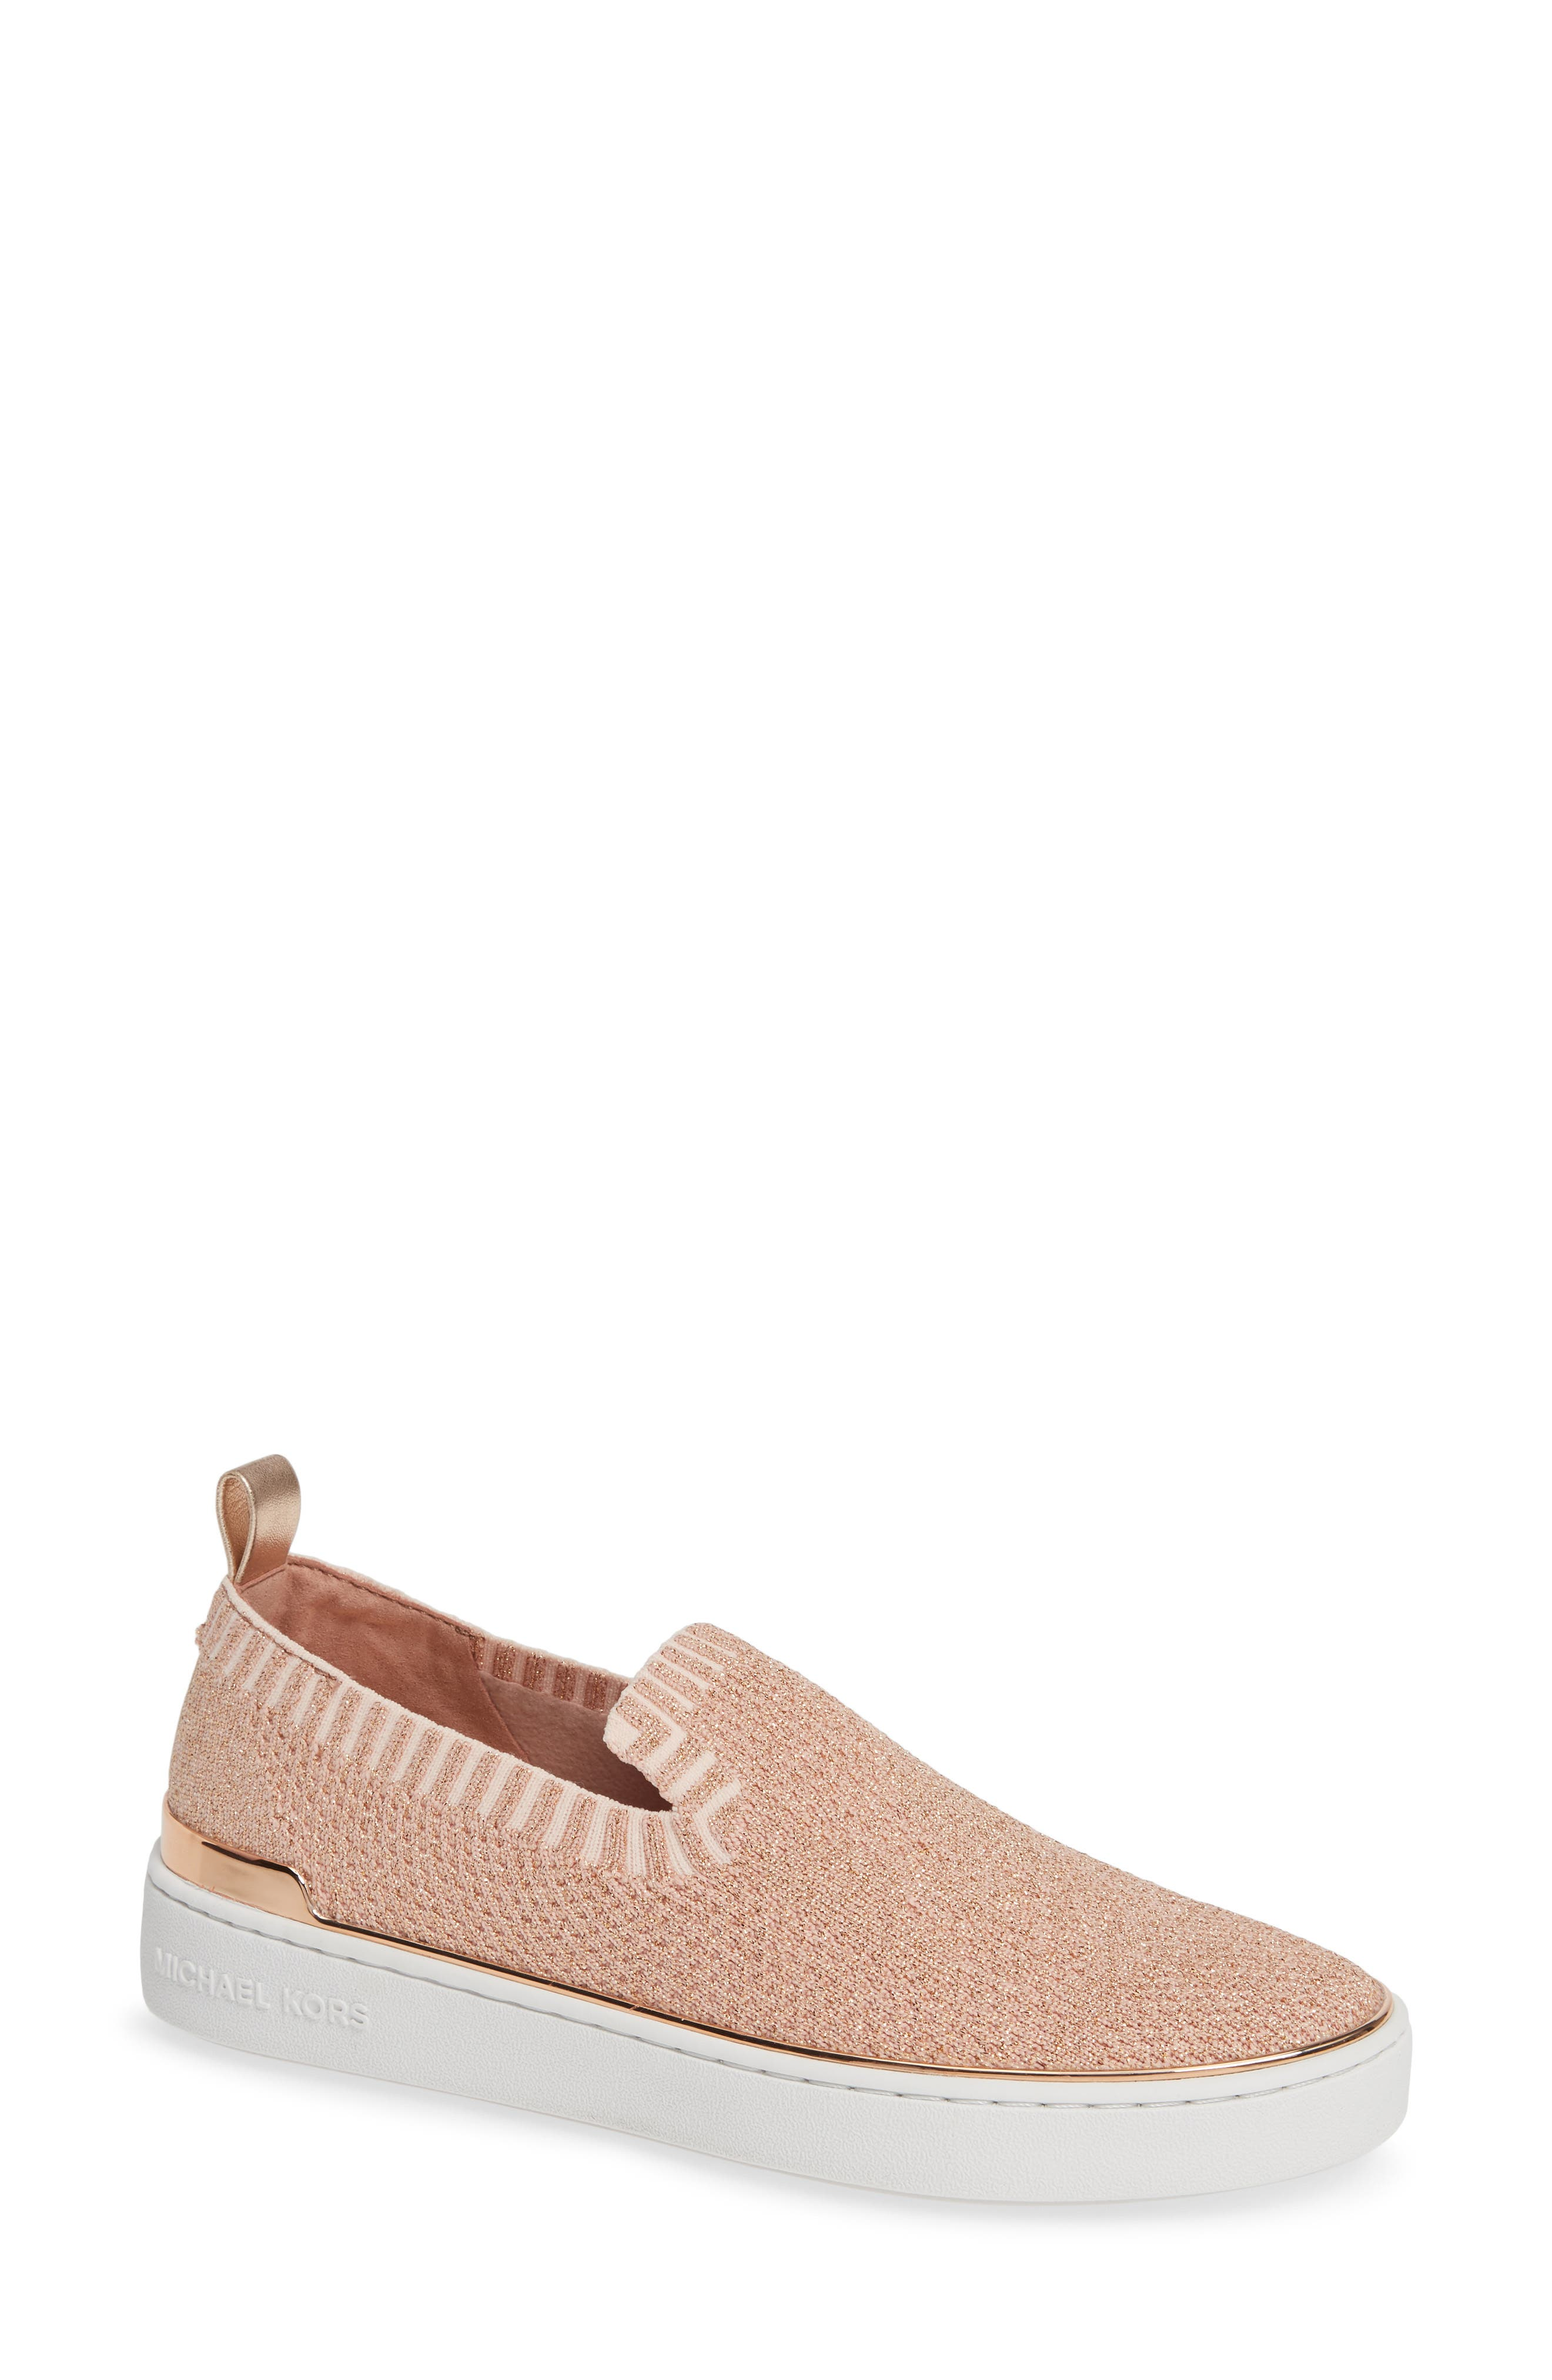 Skyler Slip-On Sneakers in Rose Gold Fabric